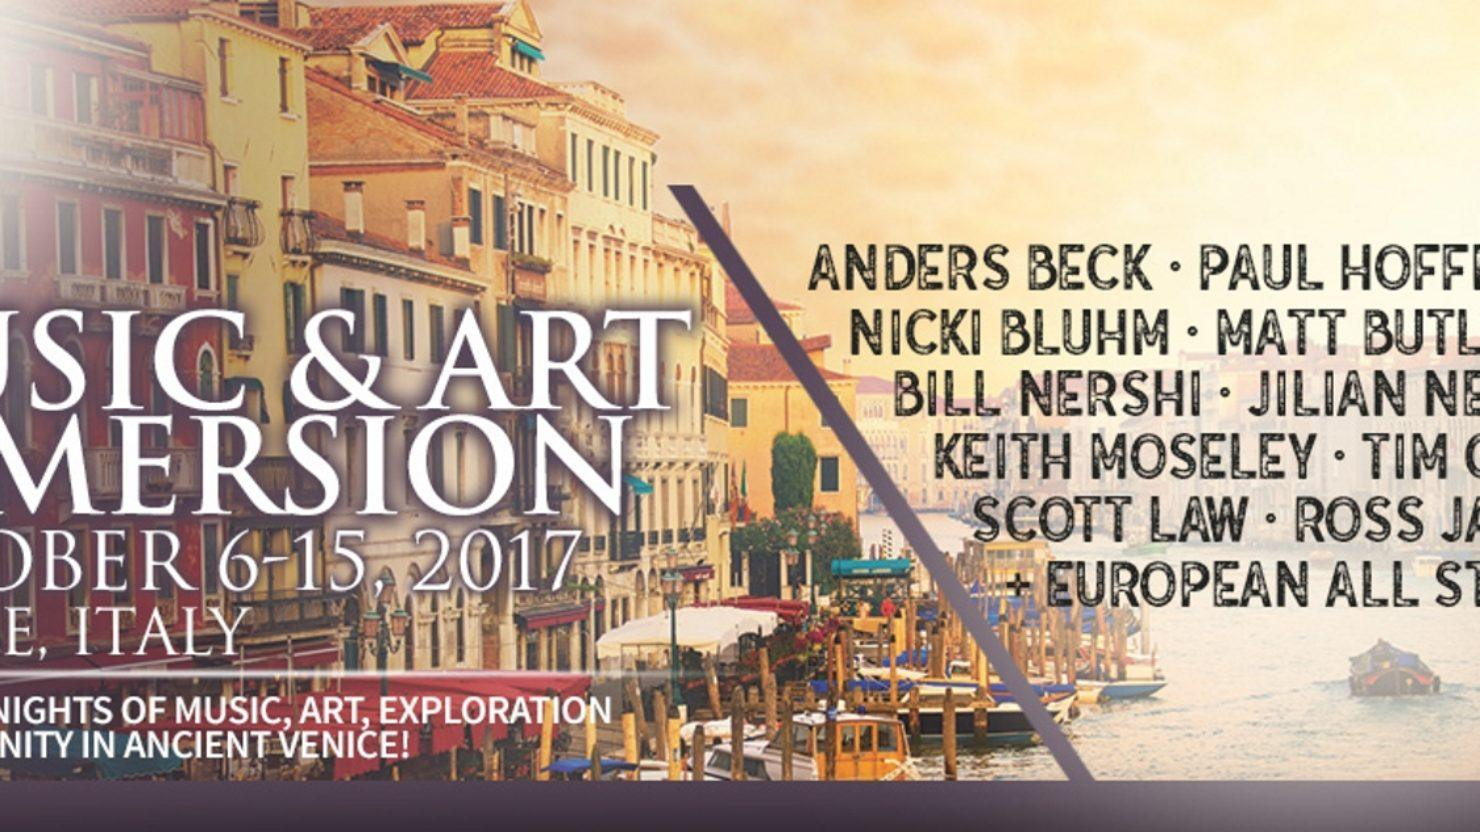 Ige announces venice music art immersion 2017 lineup for Ross craft show 2017